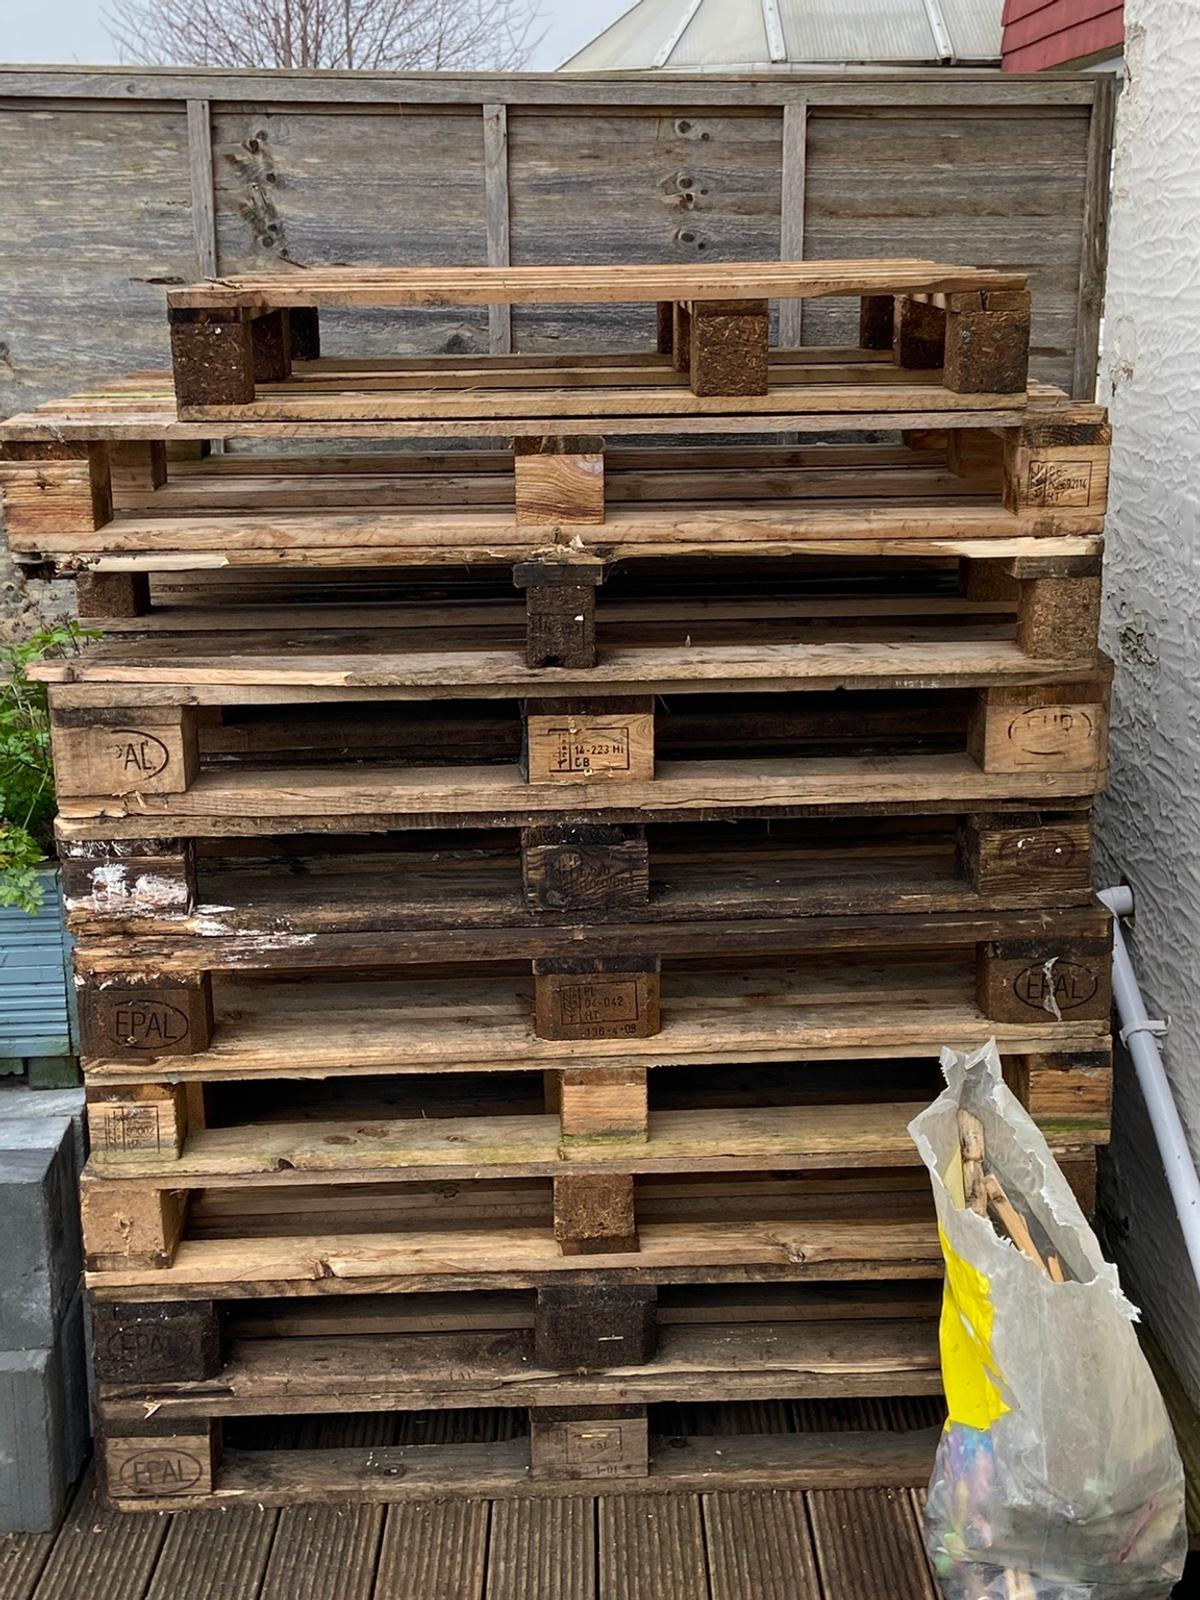 wooden pallets free in ME7 Gillingham for free for sale ...